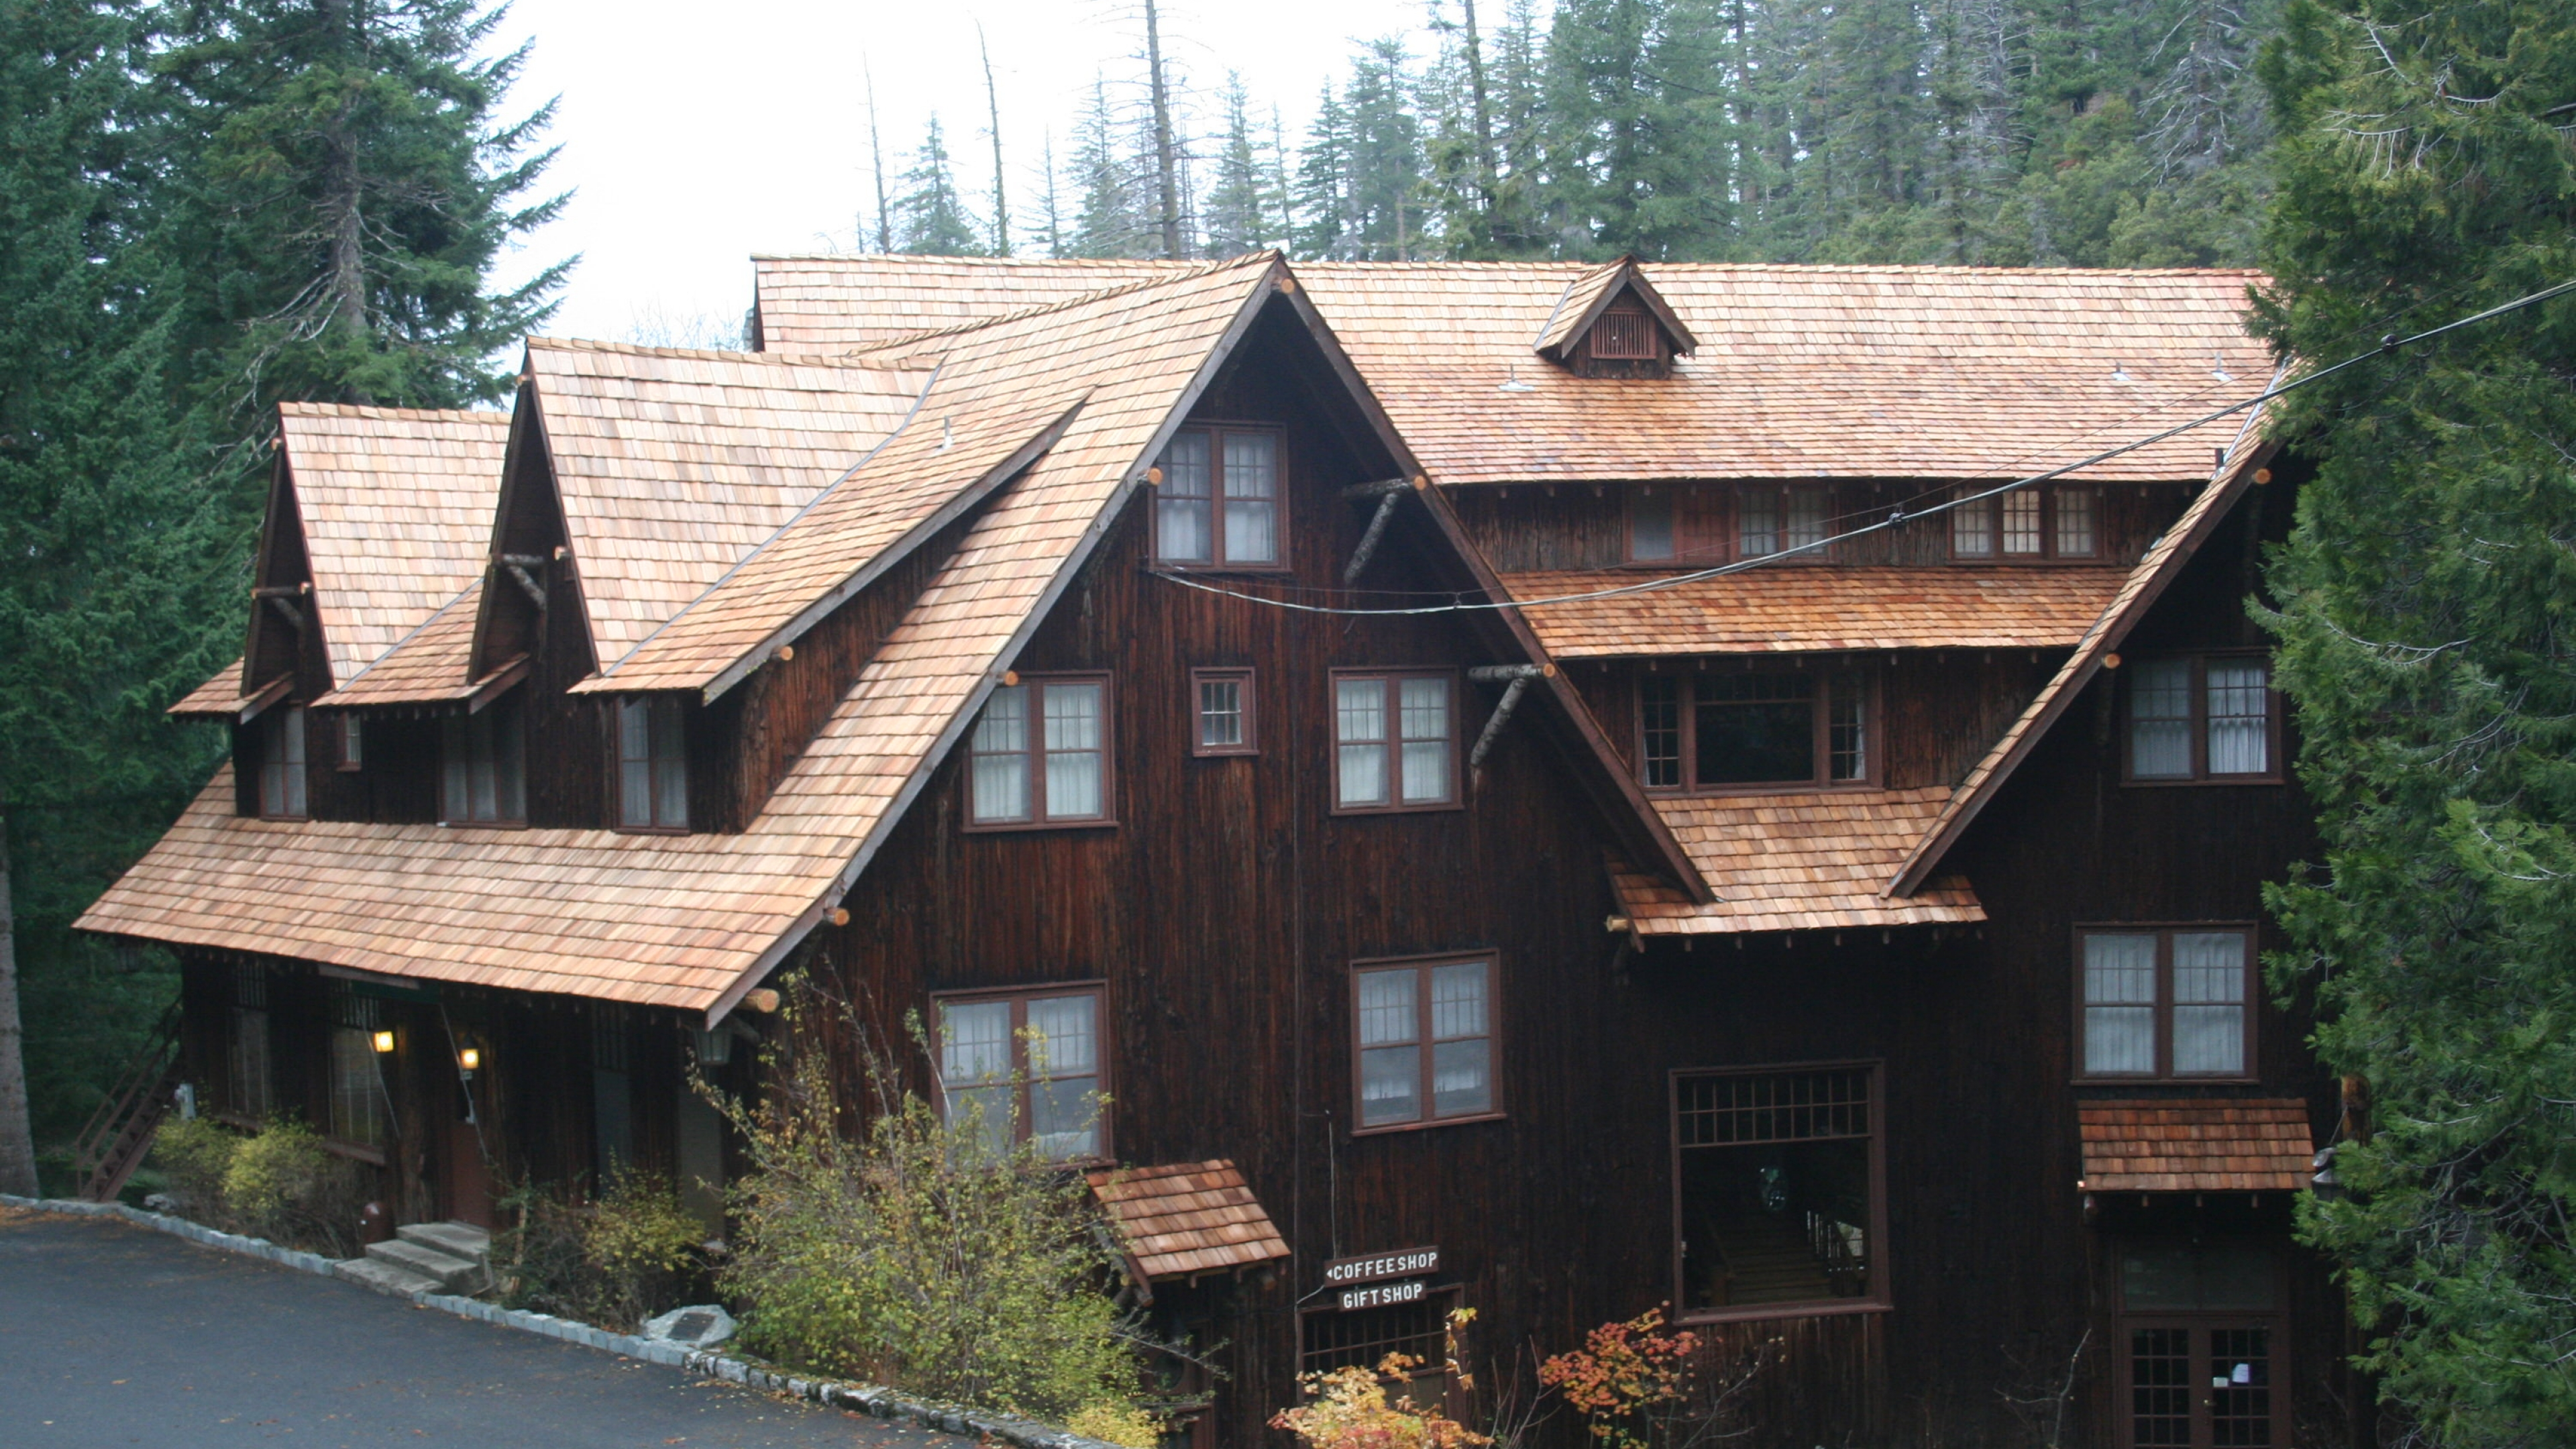 The wooden Chateau at Oregon Caves National Monument & Preserve